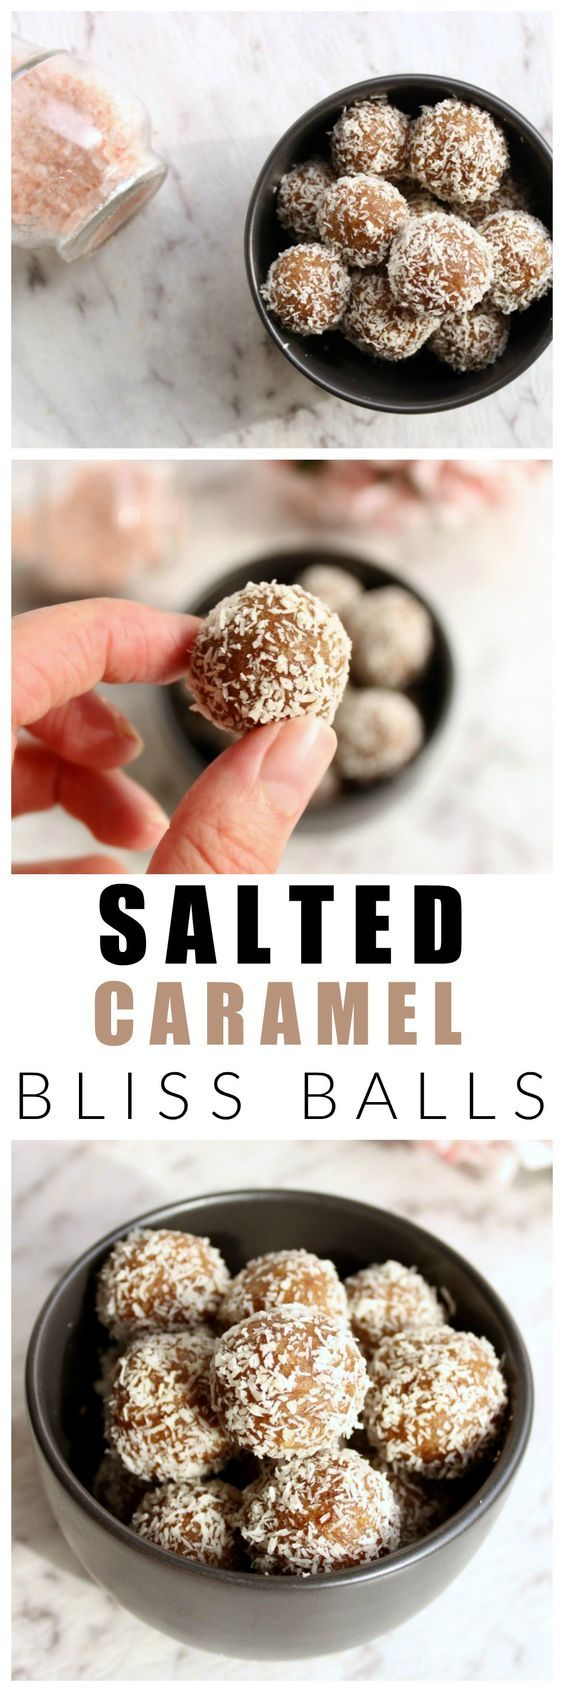 These salted caramel bliss balls are healthy refined sugar free dairy free and just as delicious as the real-deal salted caramel.